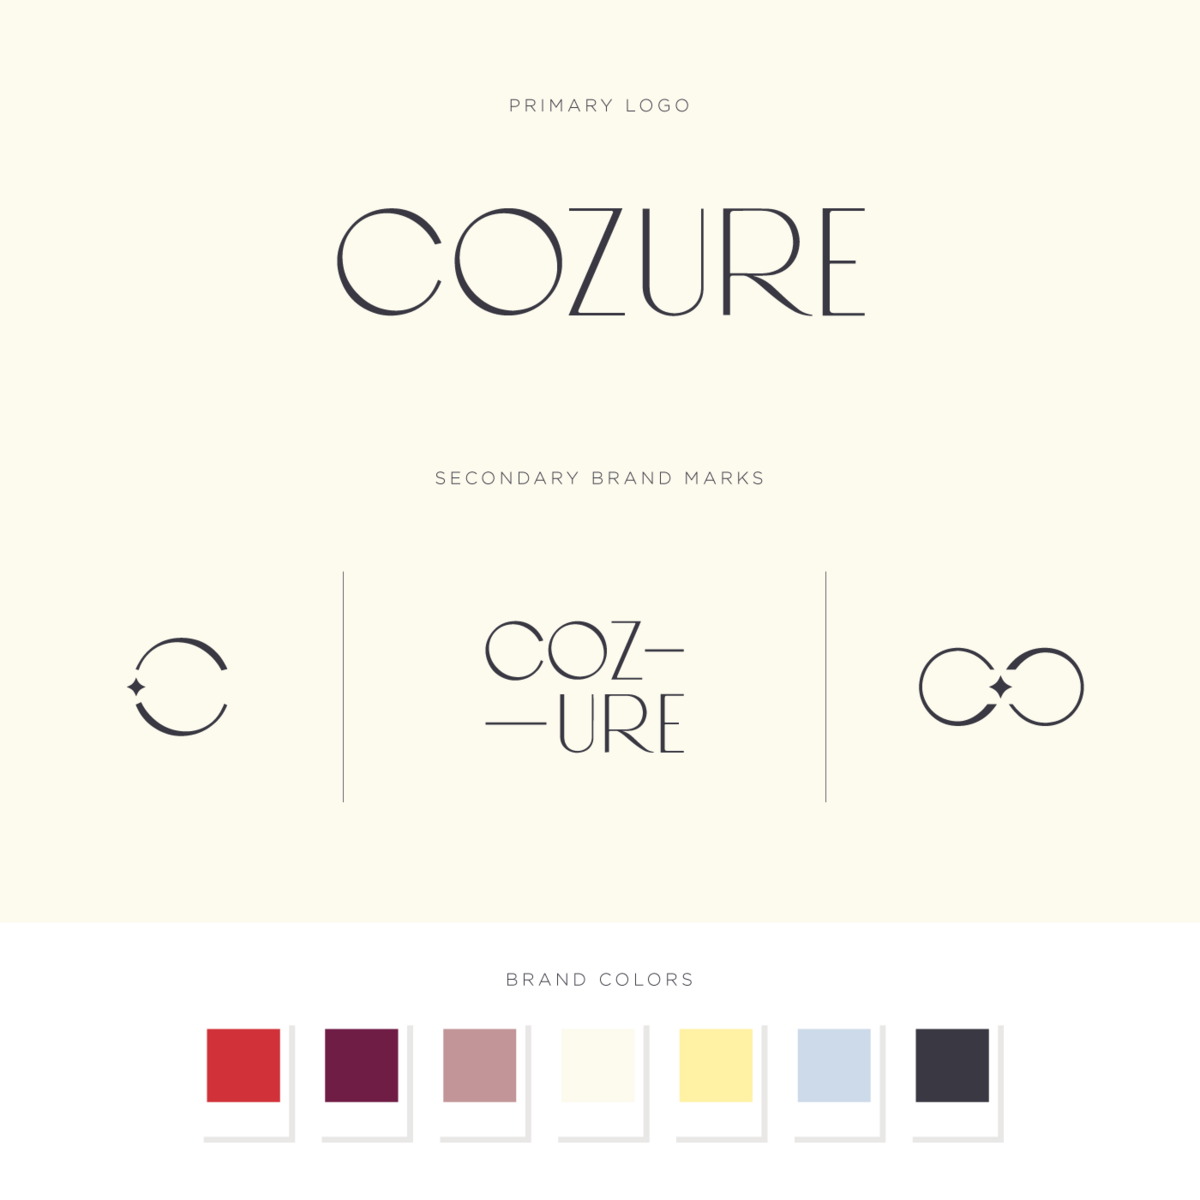 Cozure logos and brand colors